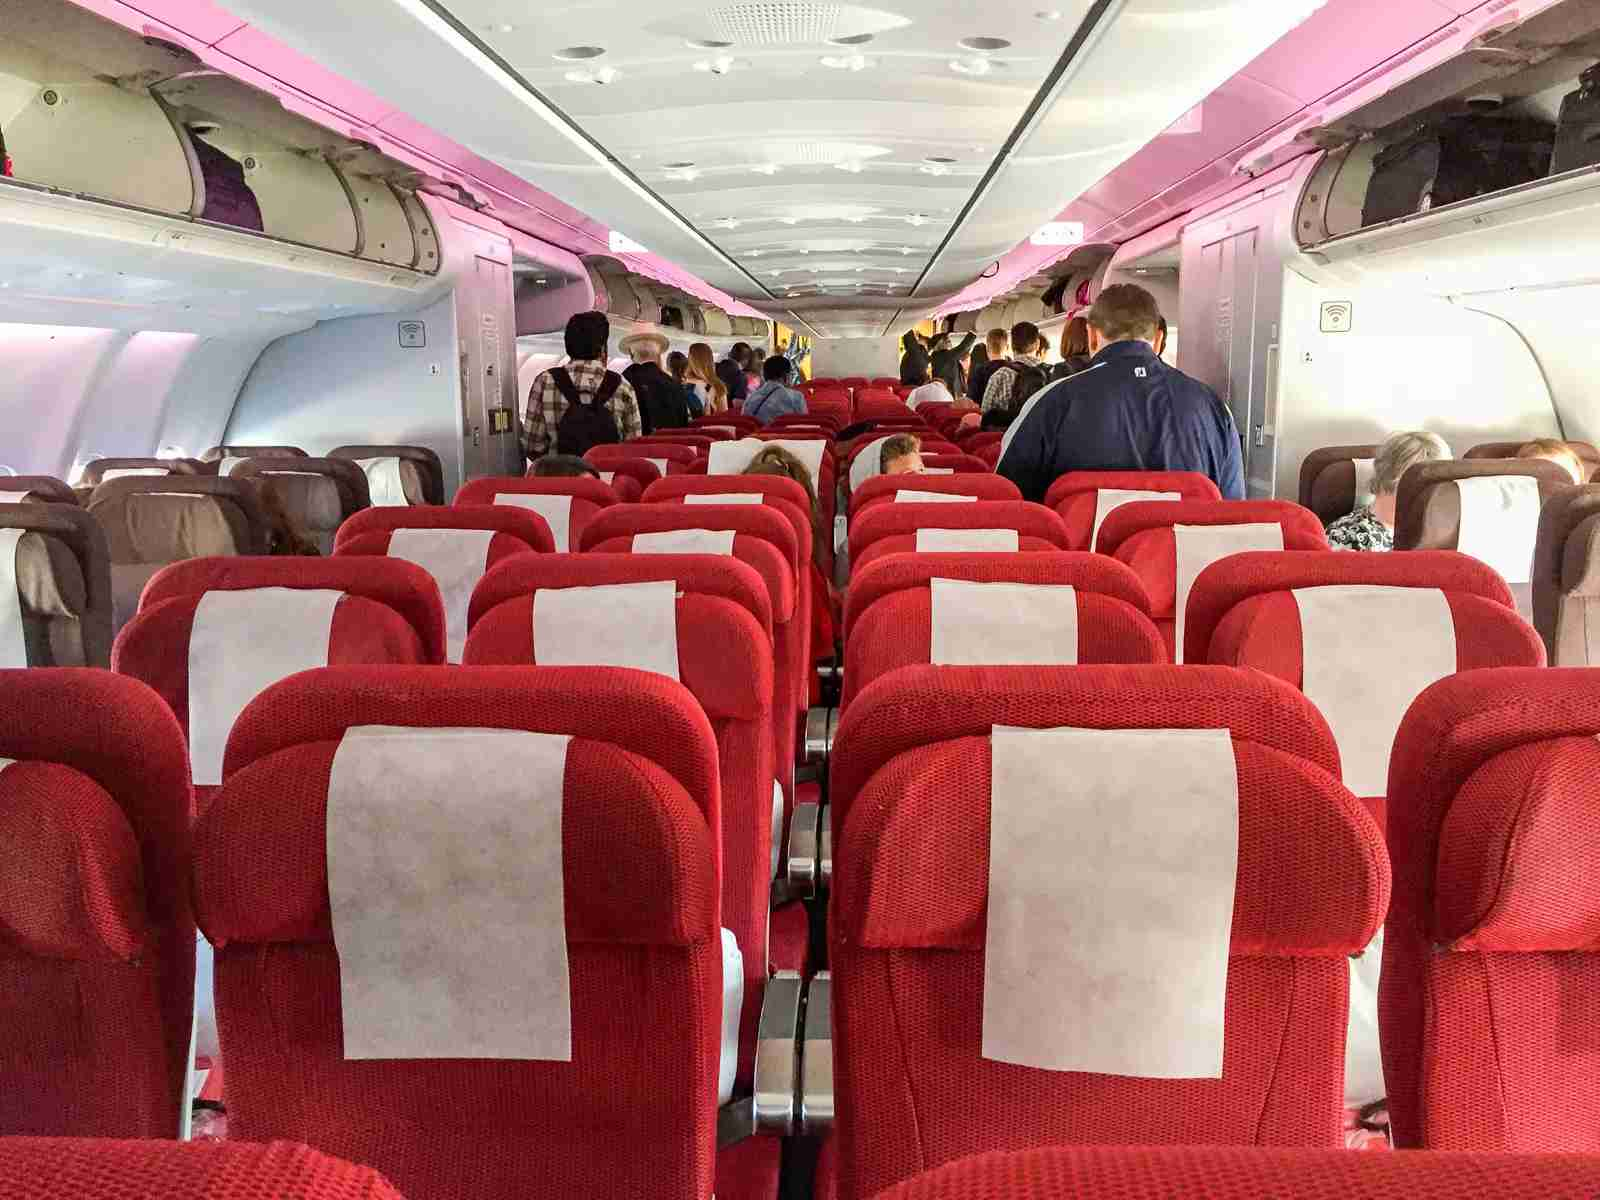 Seats in the economy cabin of a Virgin Atlantic A330 (G-VUFO) (Photo by Nick Ewen / The Points Guy)